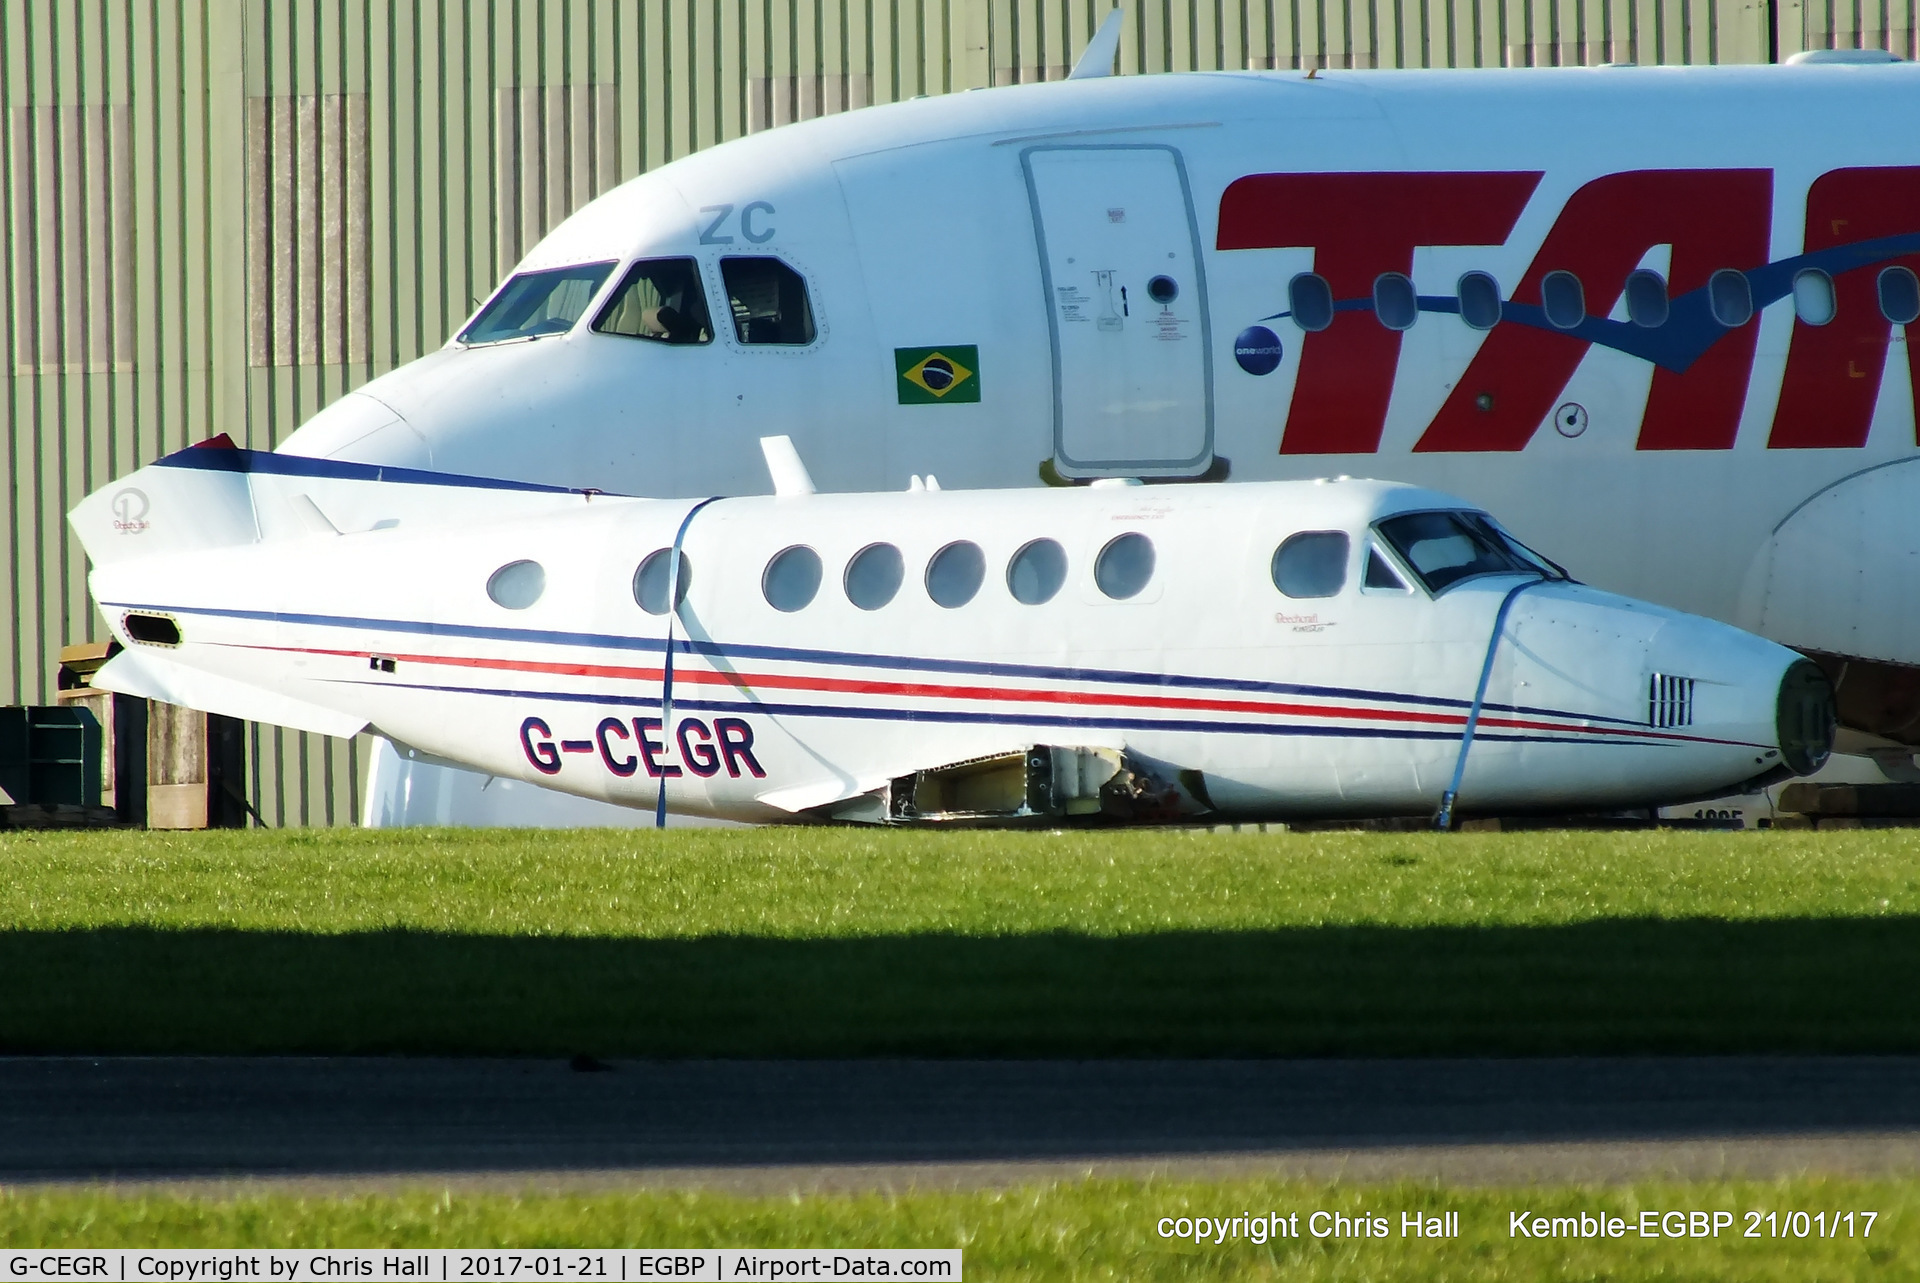 G-CEGR, 1978 Beech 200 Super King Air C/N BB-351, being parted out by ASI at Kemble